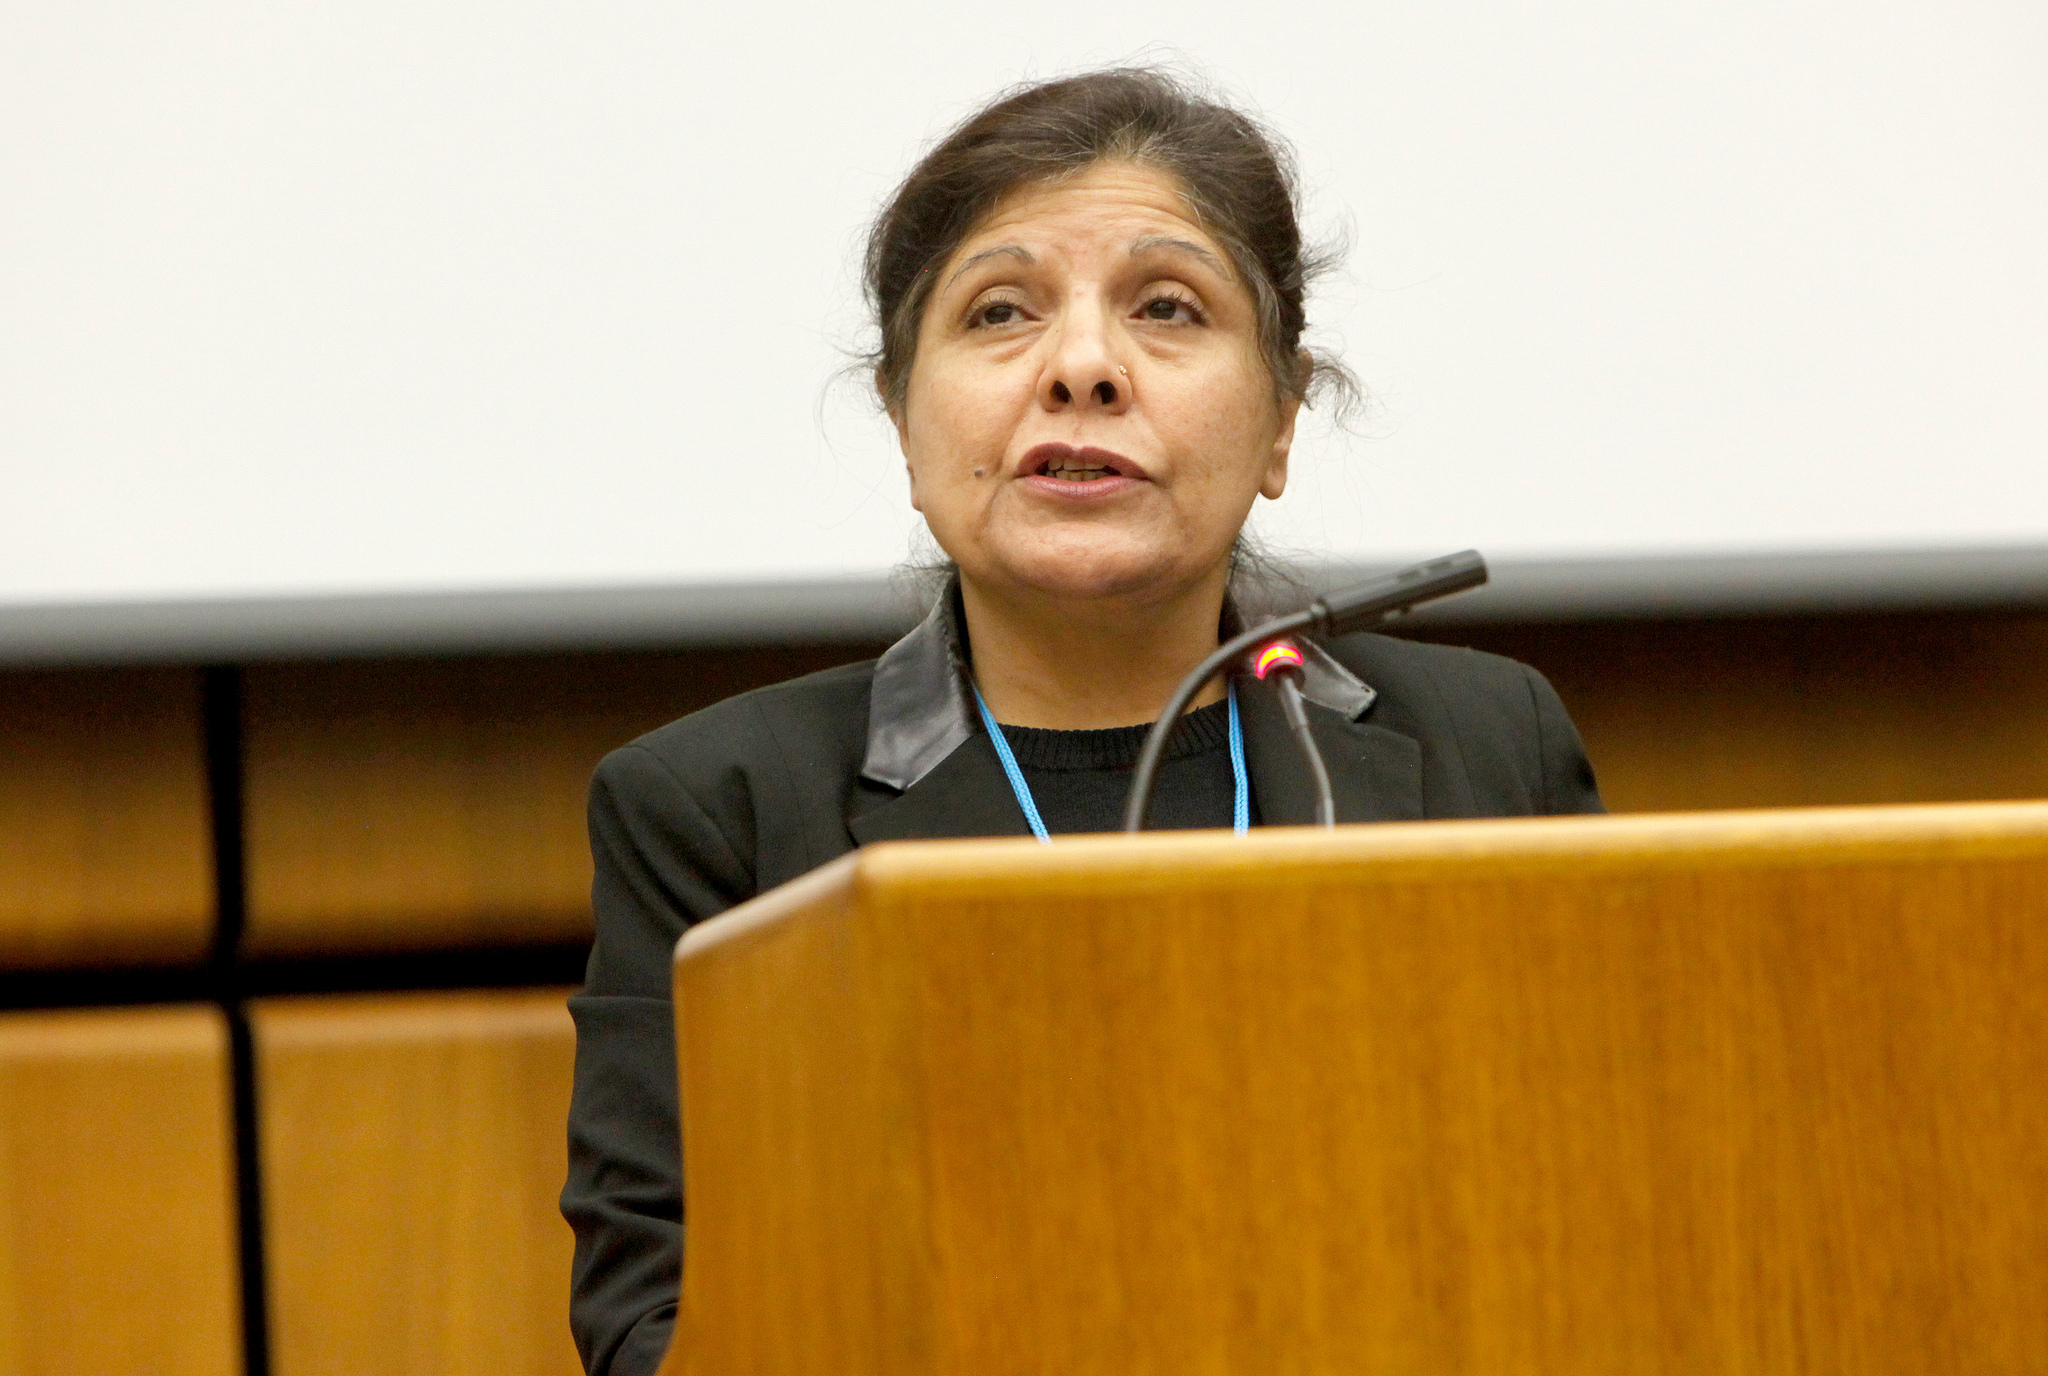 Photo: ESCAP Executive Secretary Dr Shamshad Akhtar. Credit: UNIDO | Flickr